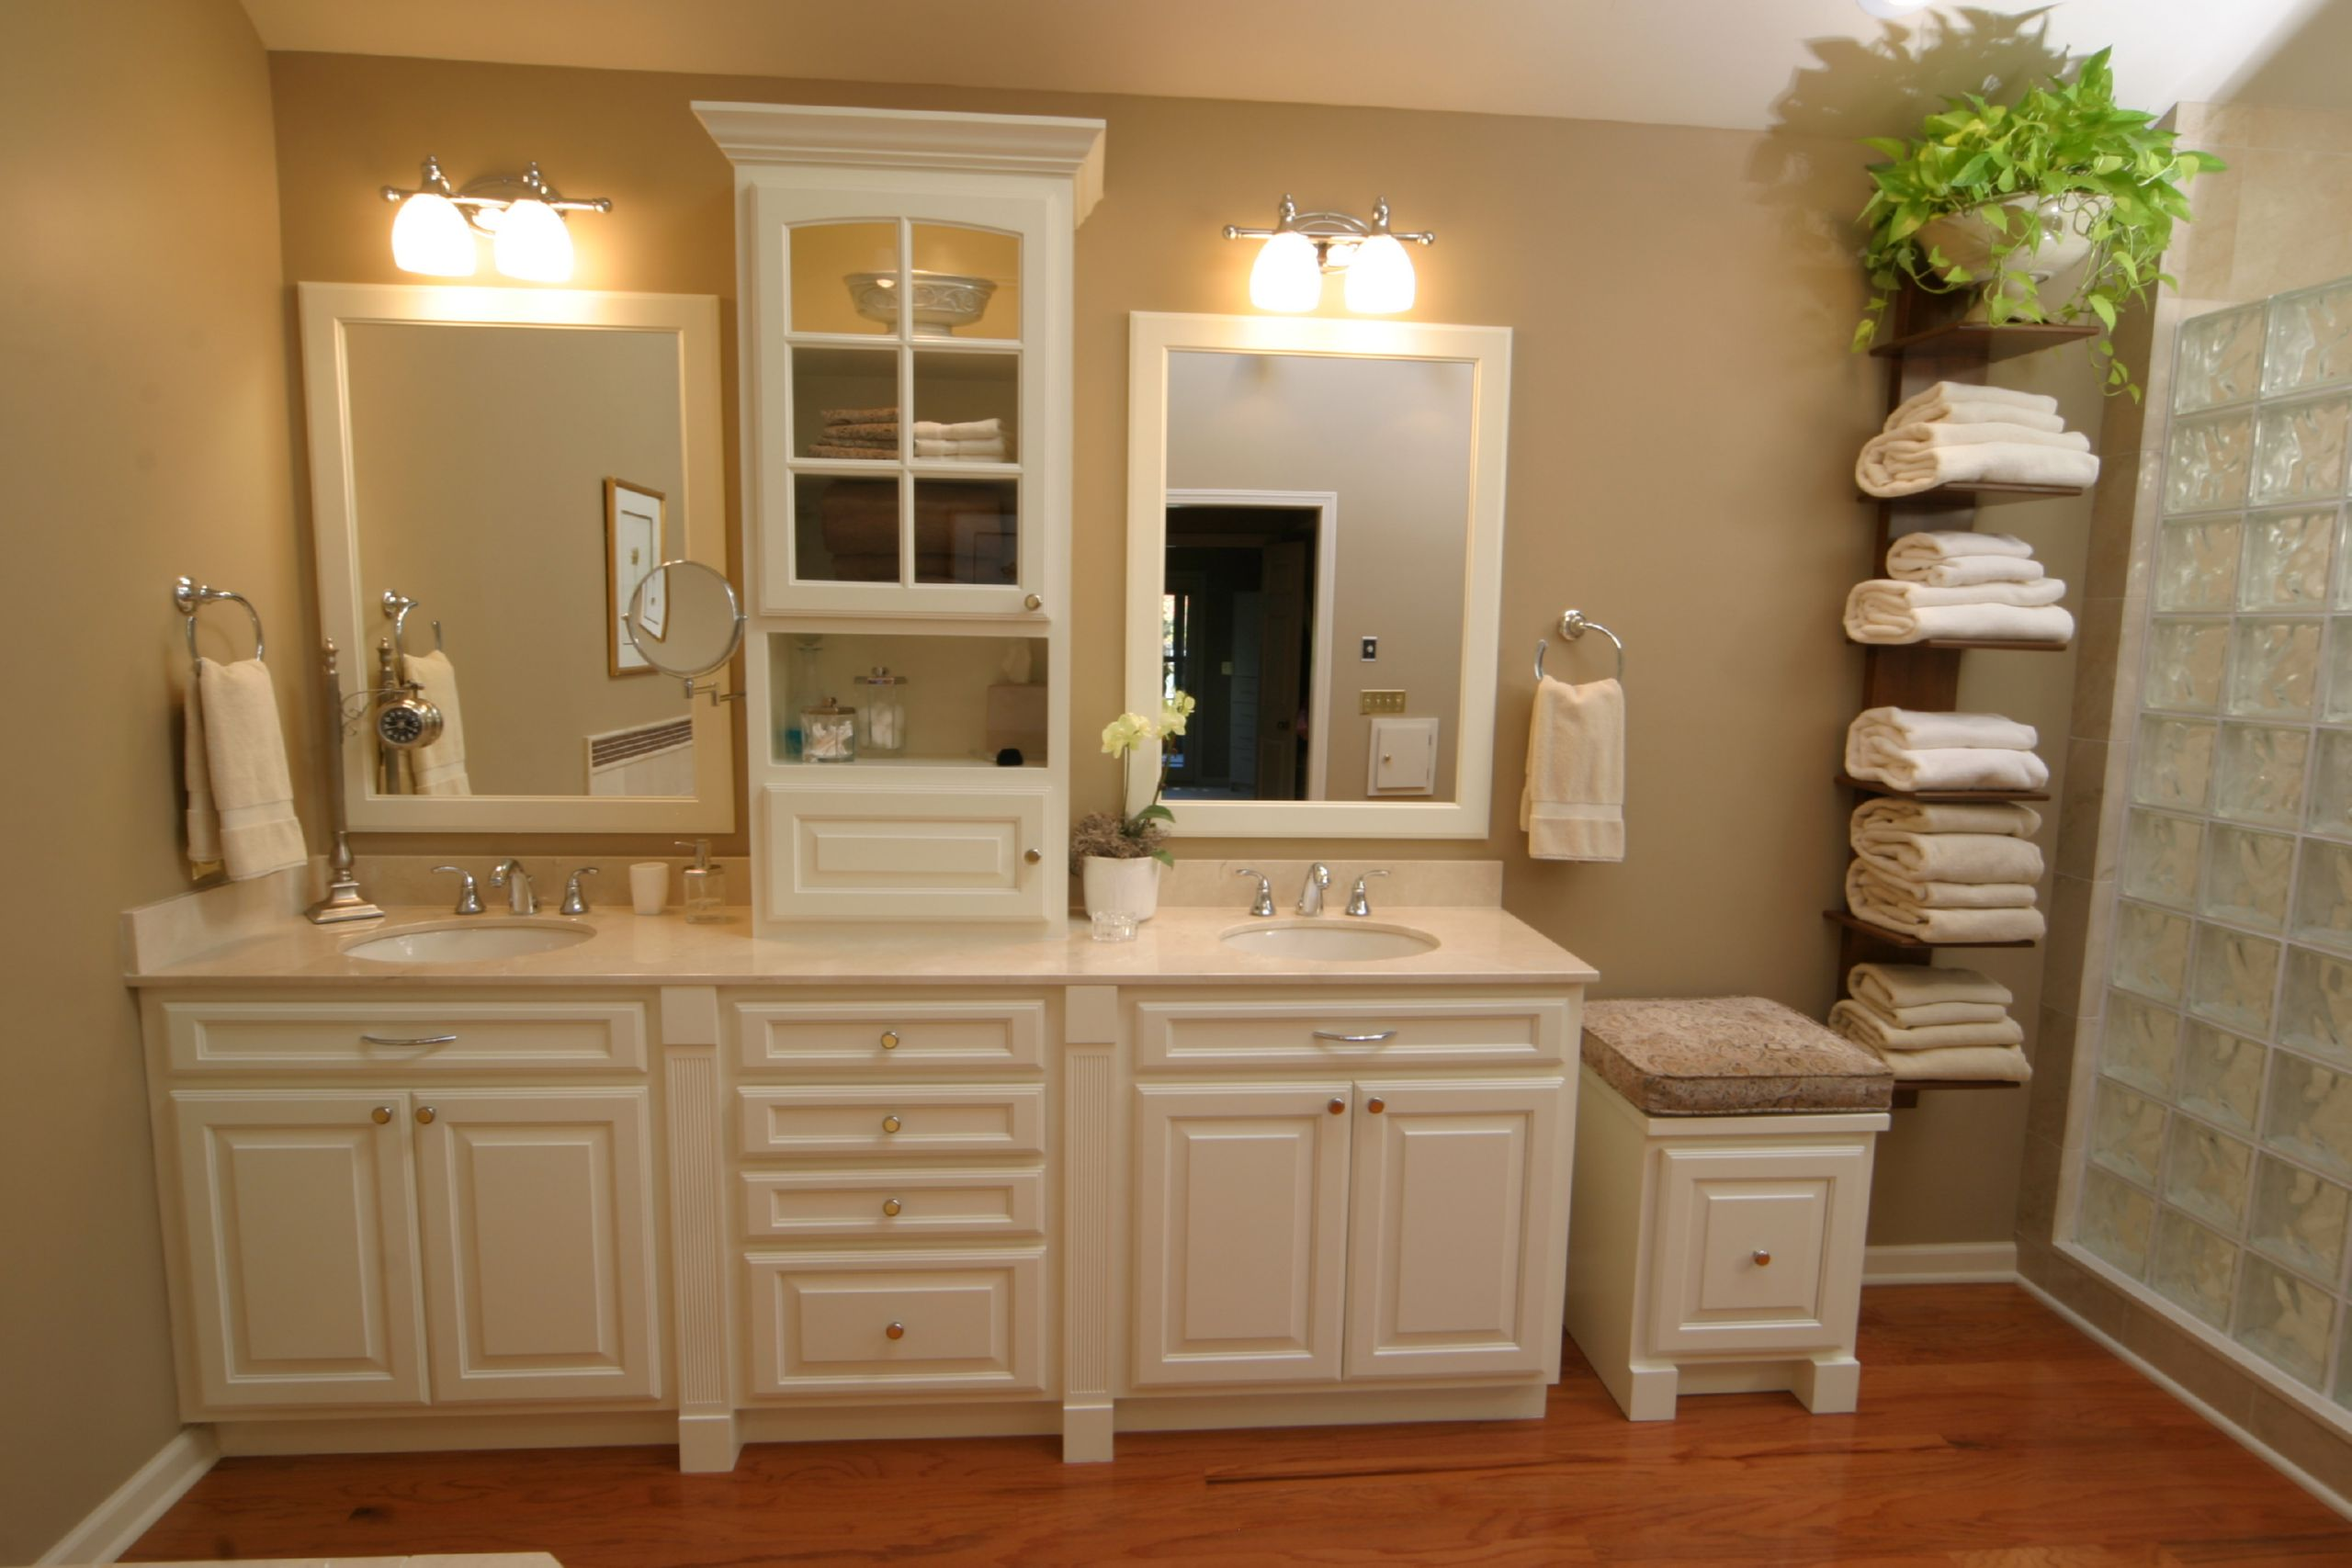 Bathroom remodeling bath remodel contractor for Bathroom remodel ideas pictures